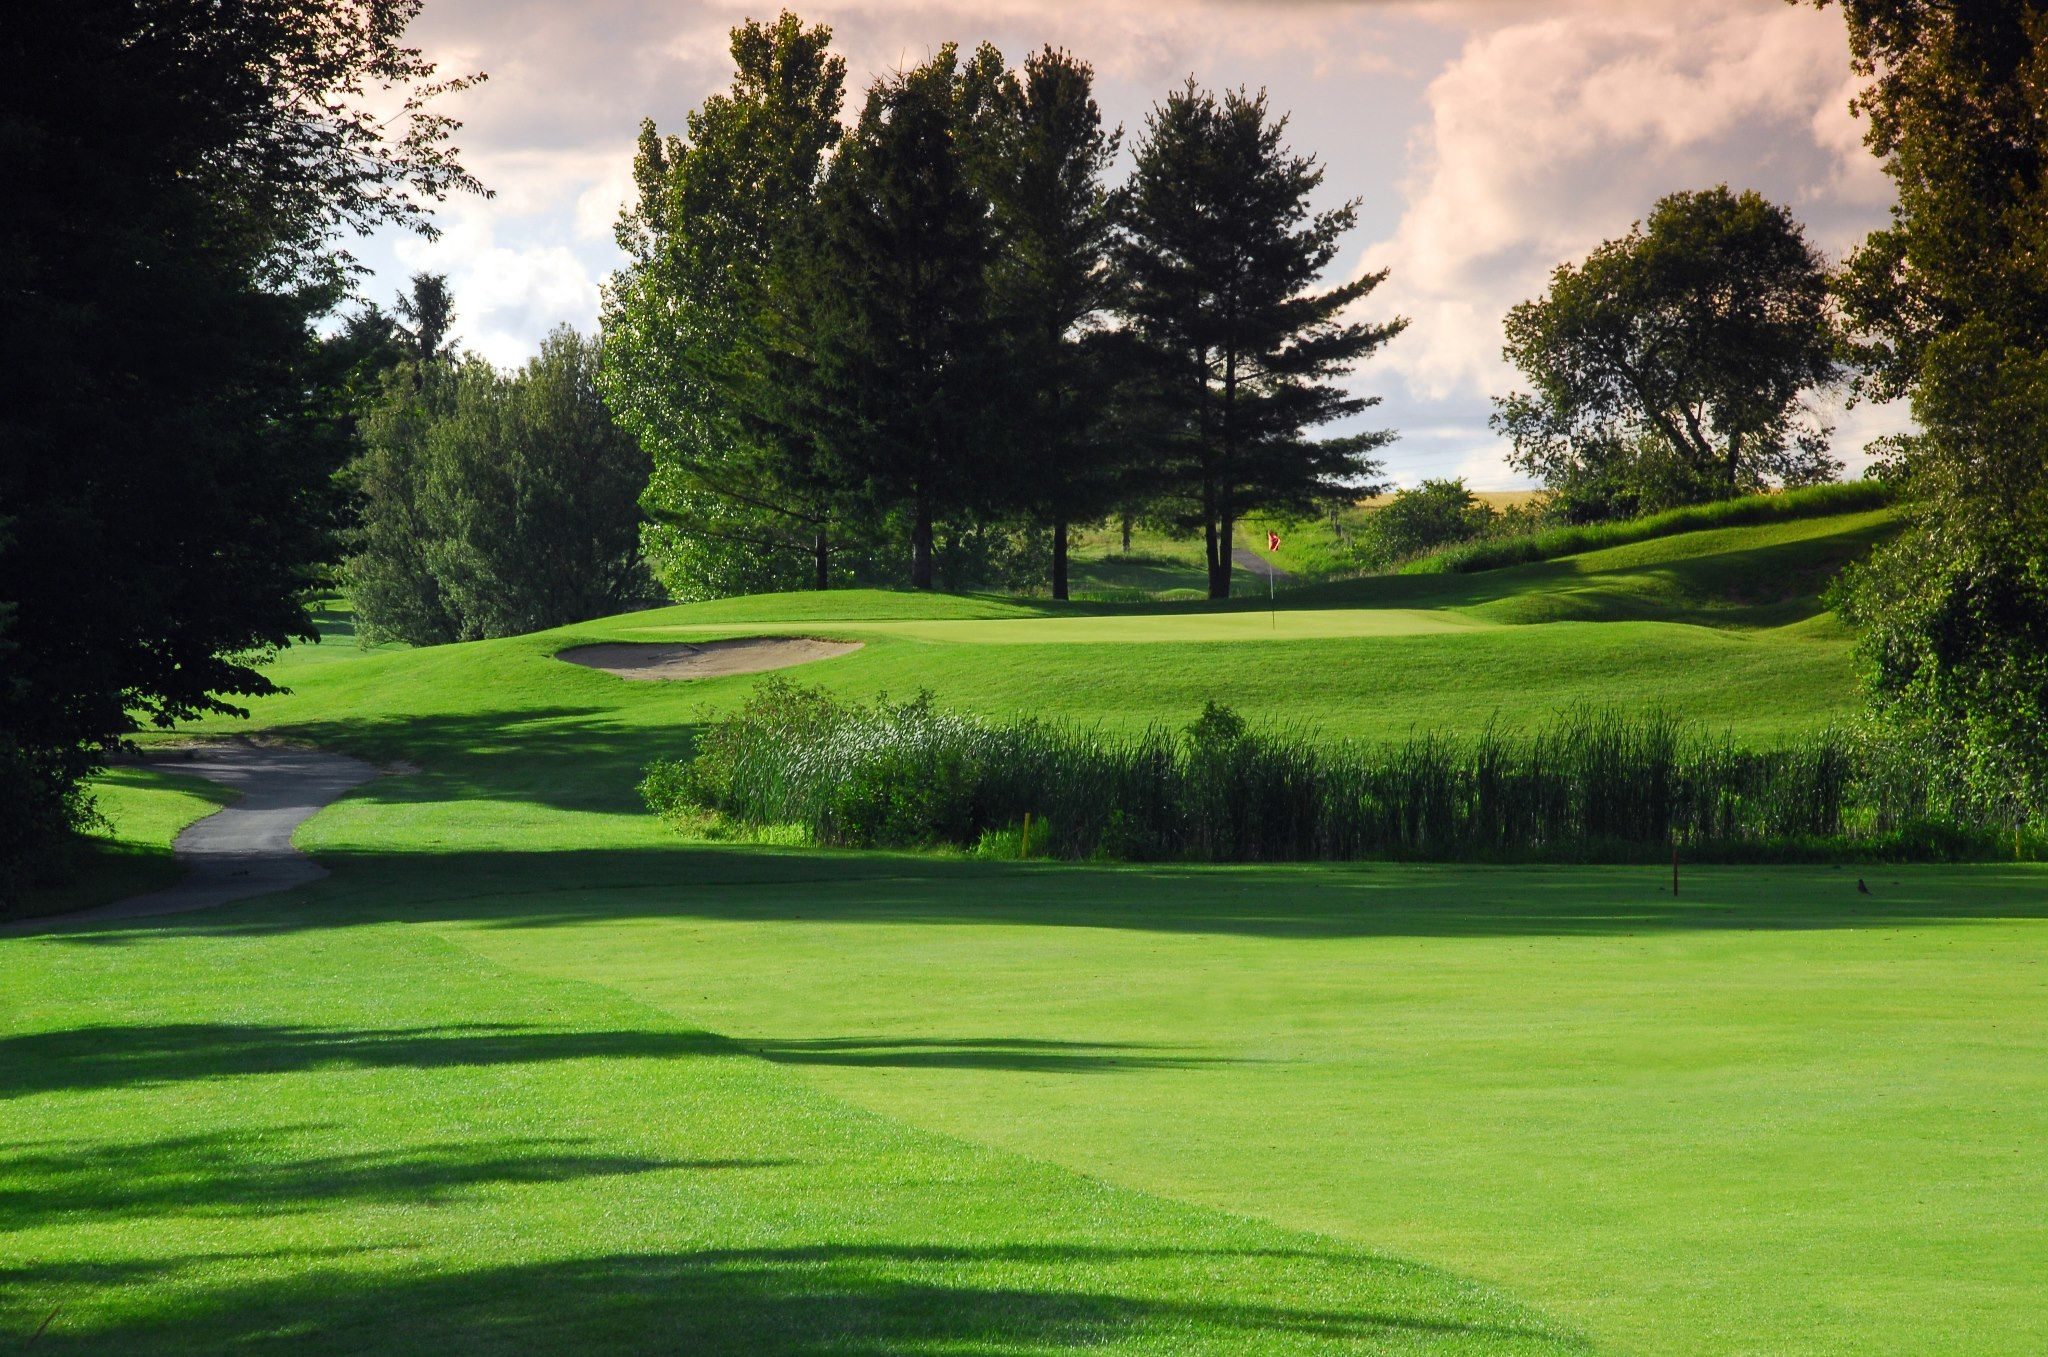 Brant valley golf course cover picture